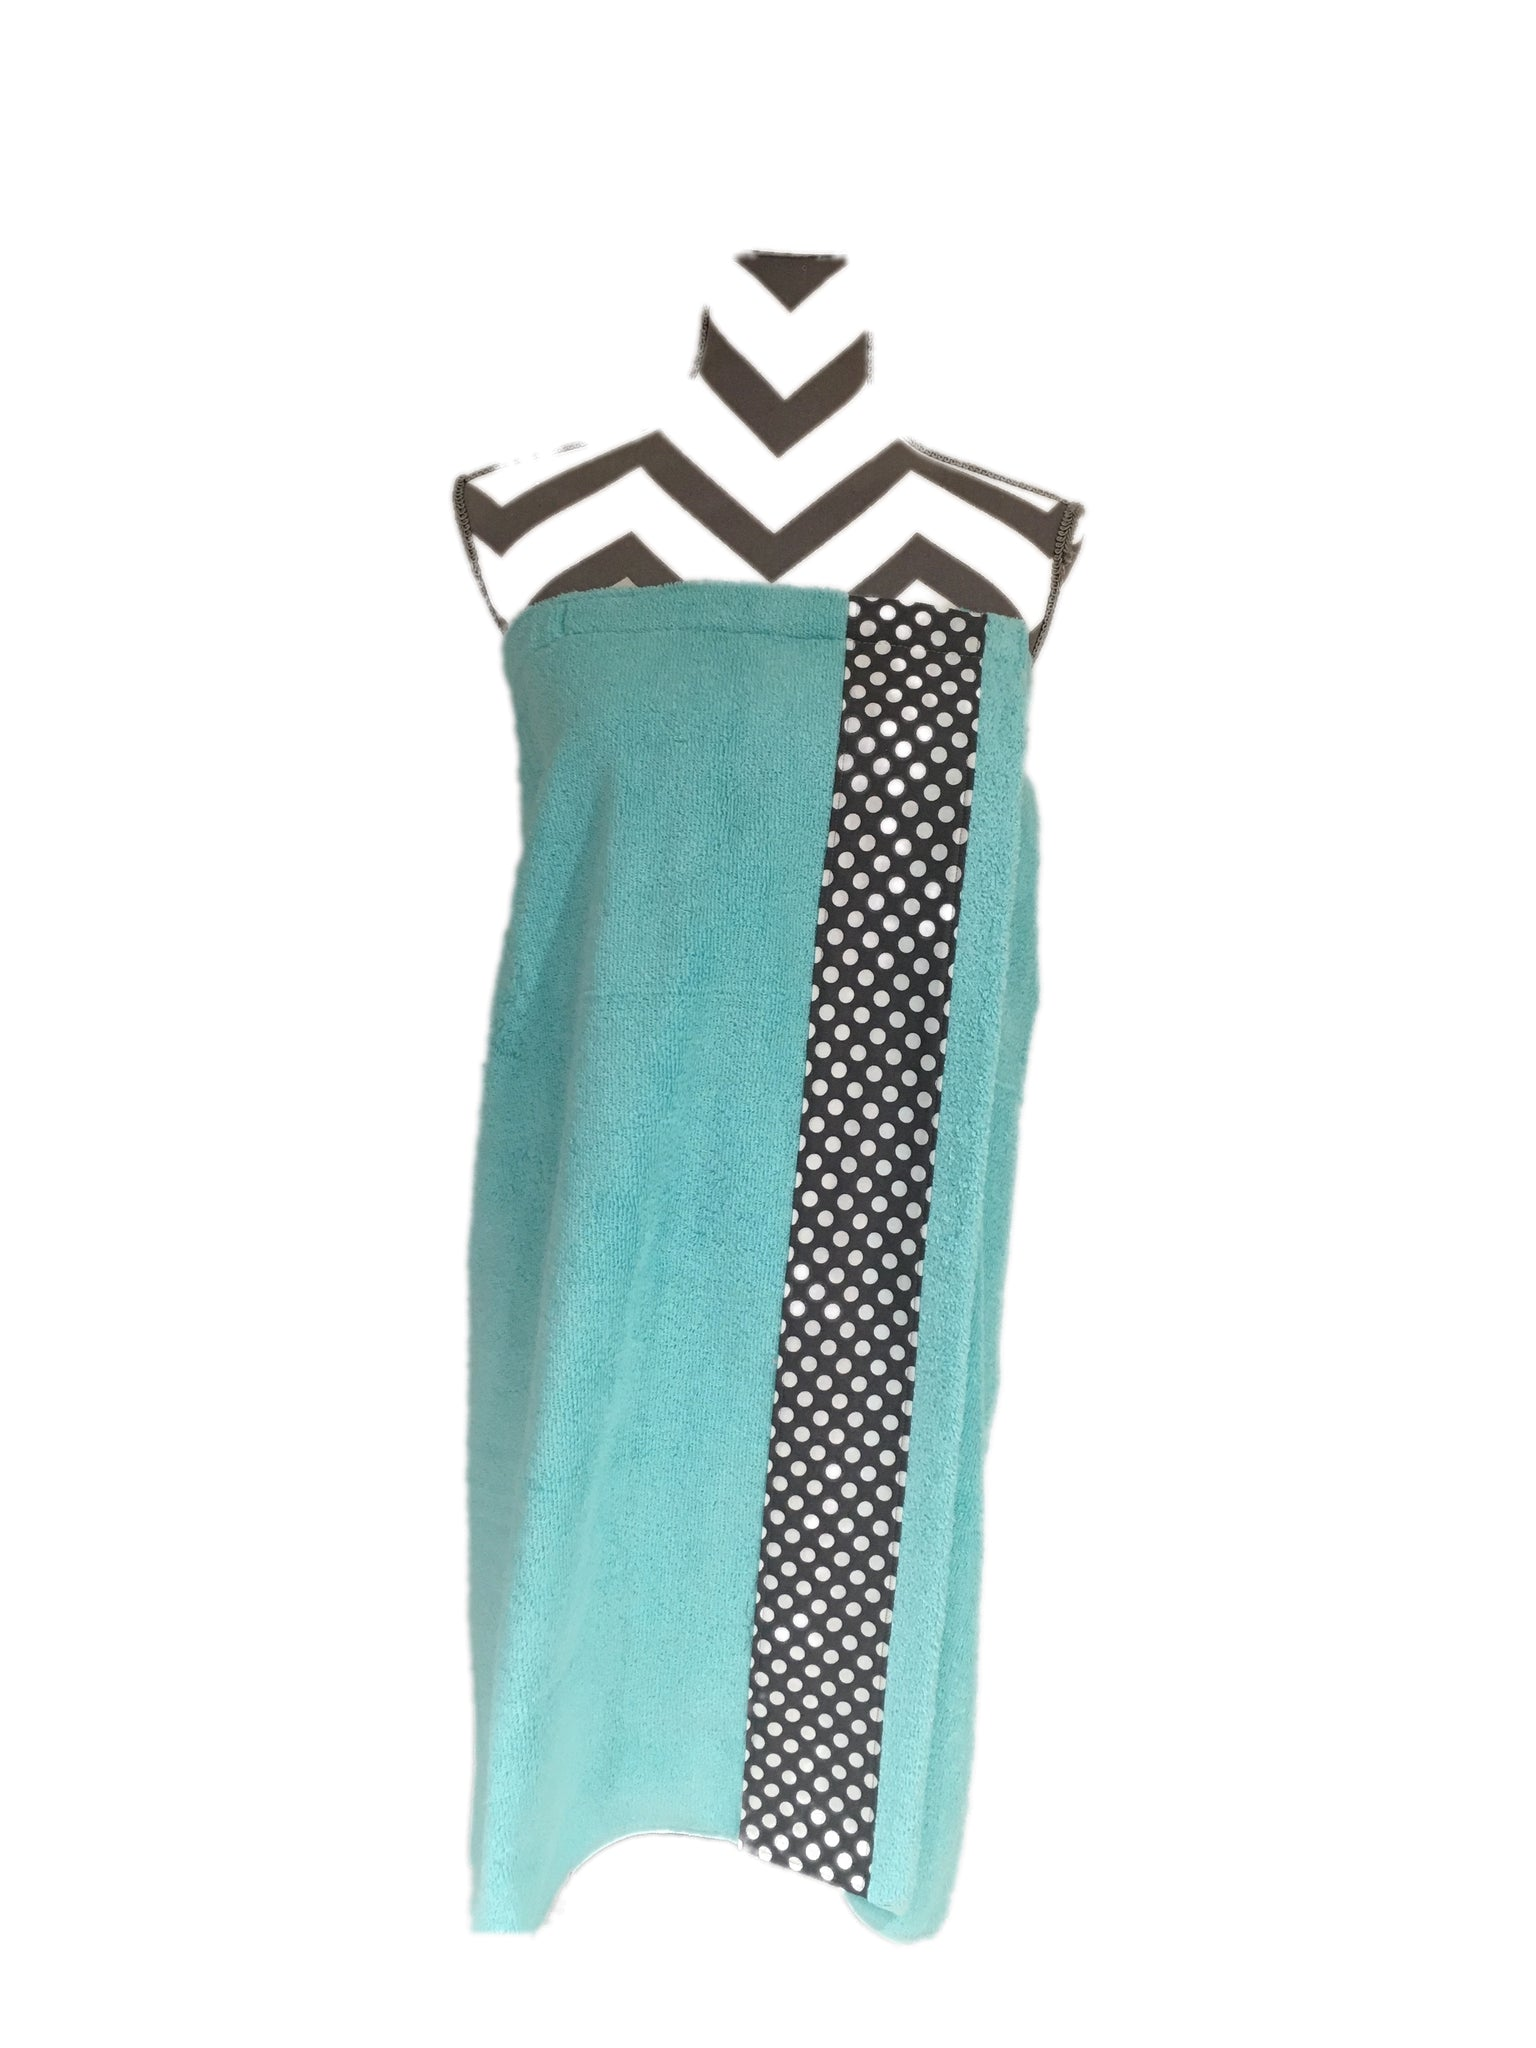 Charcoal and White Ta Dot Tiffany Aqua Towel Wrap